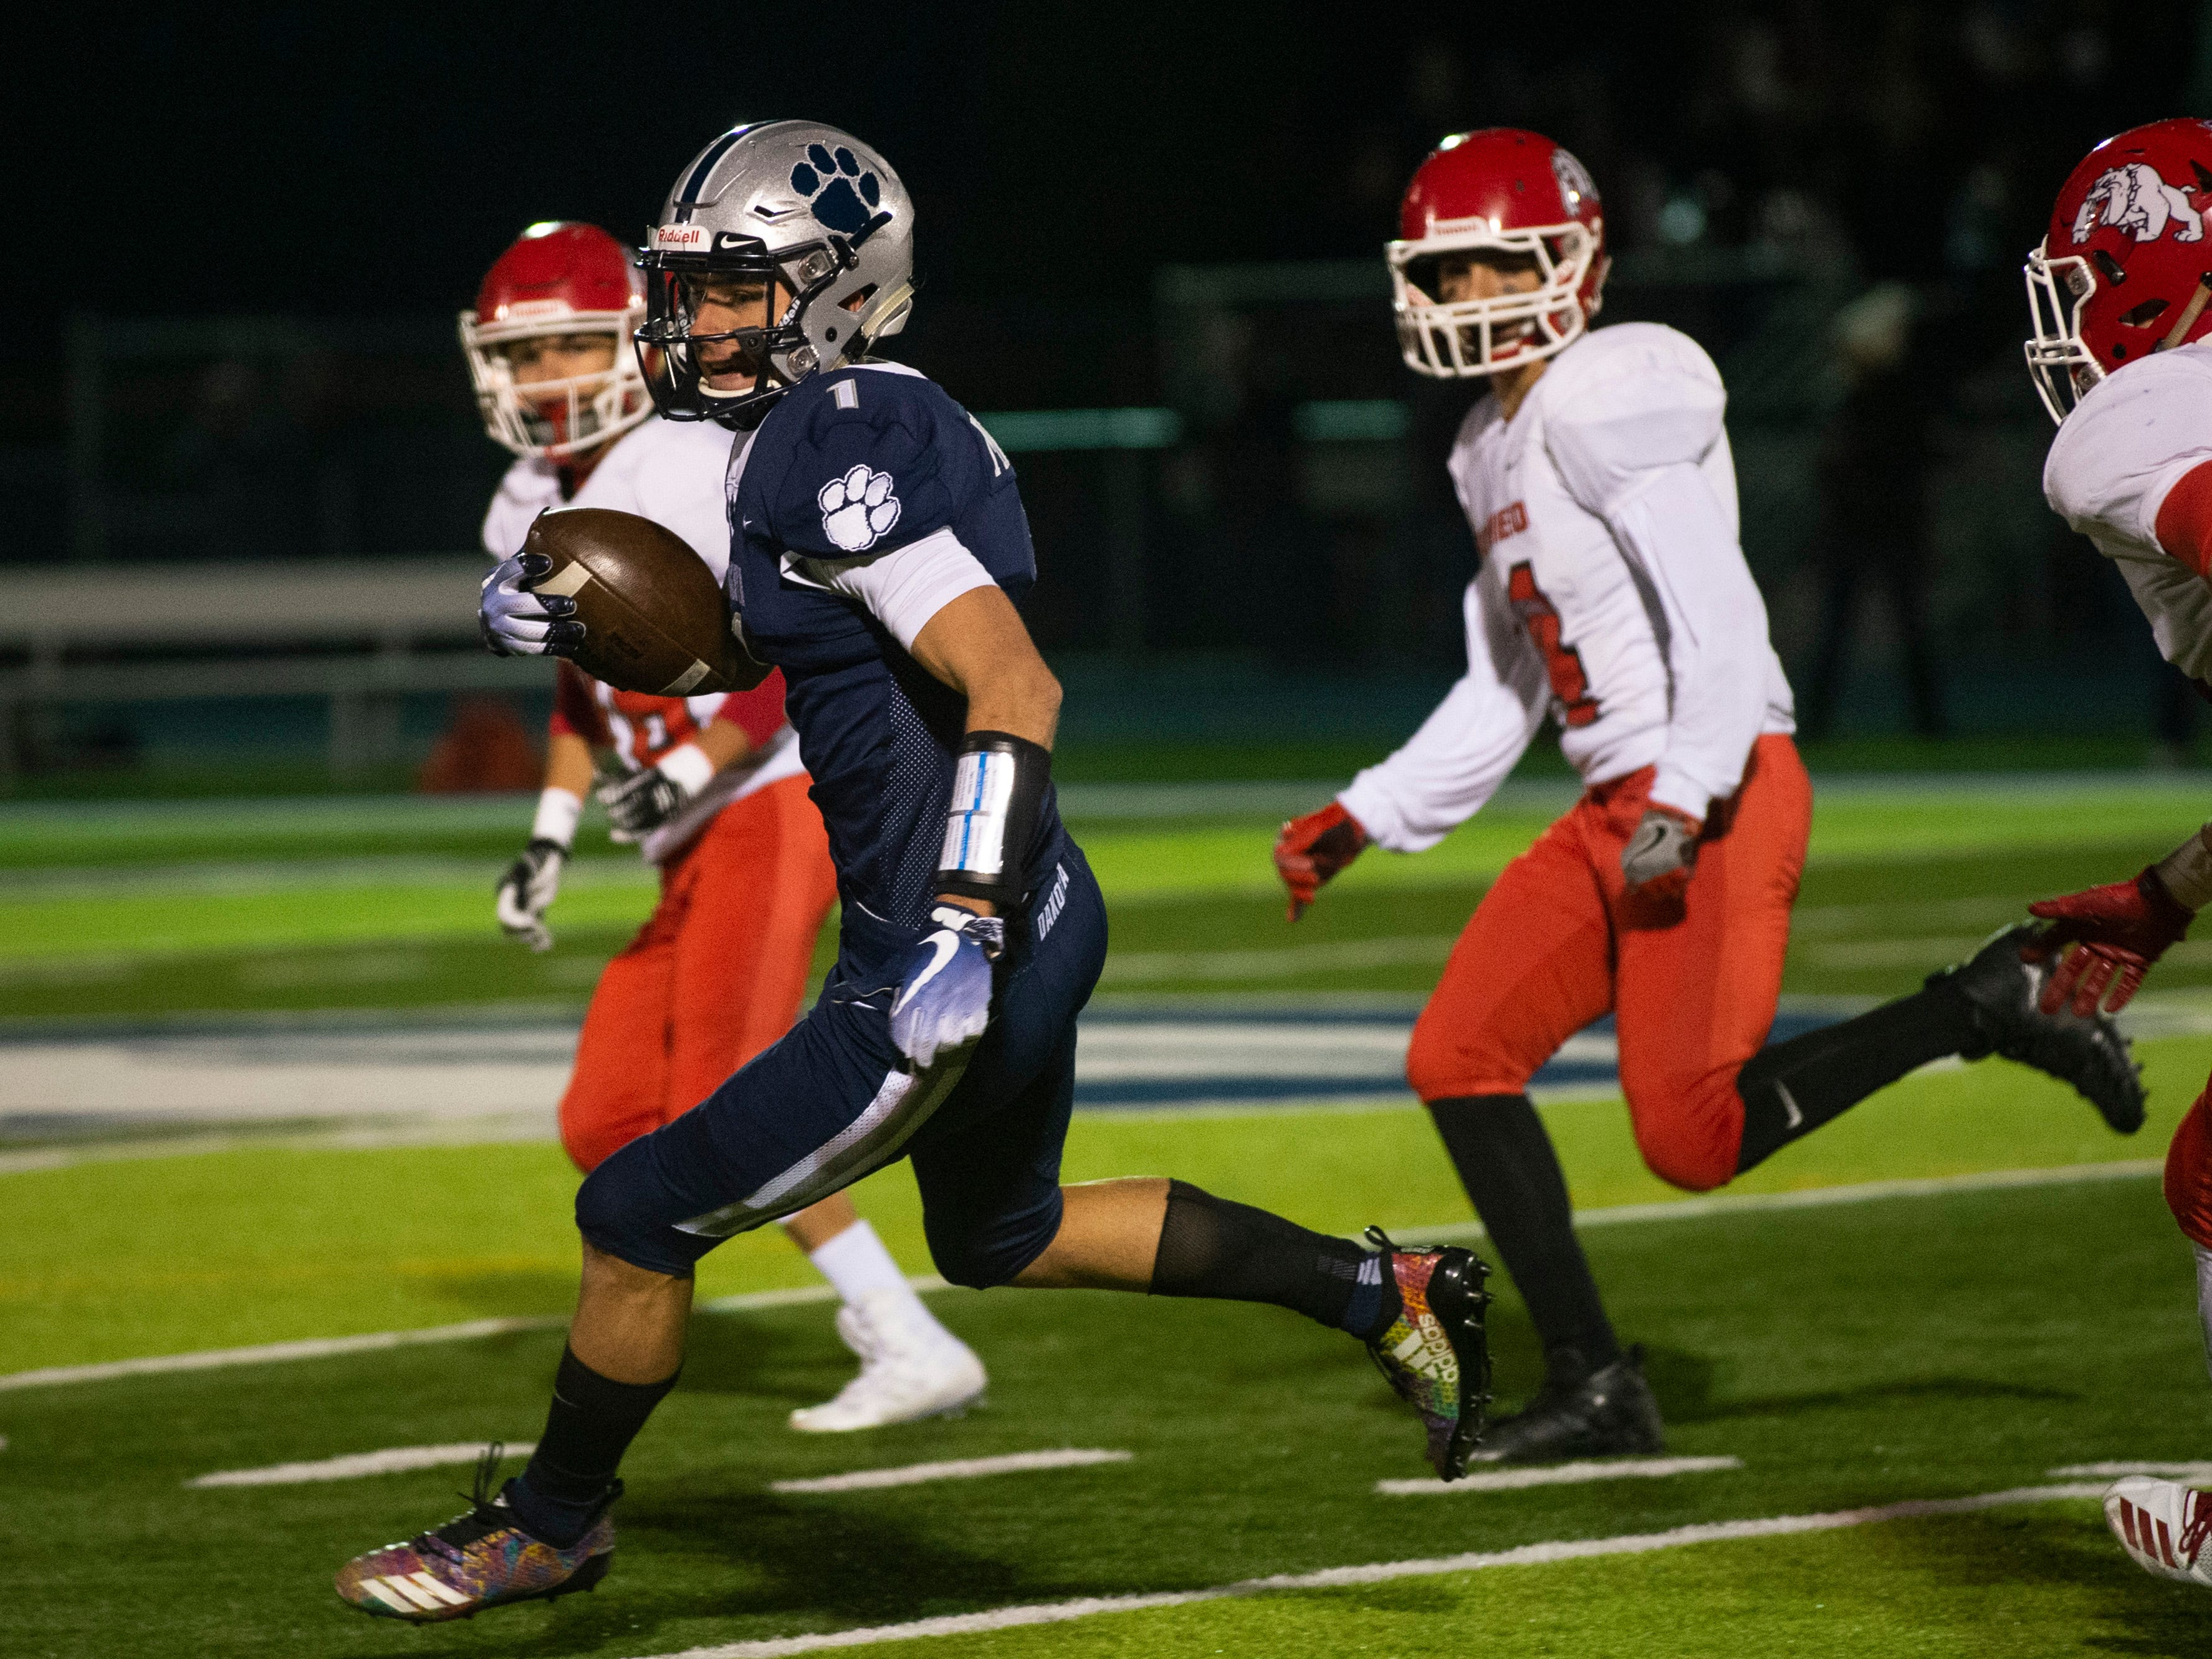 Dakota's Brandon Michalak moves with the ball during the 2nd quarter.